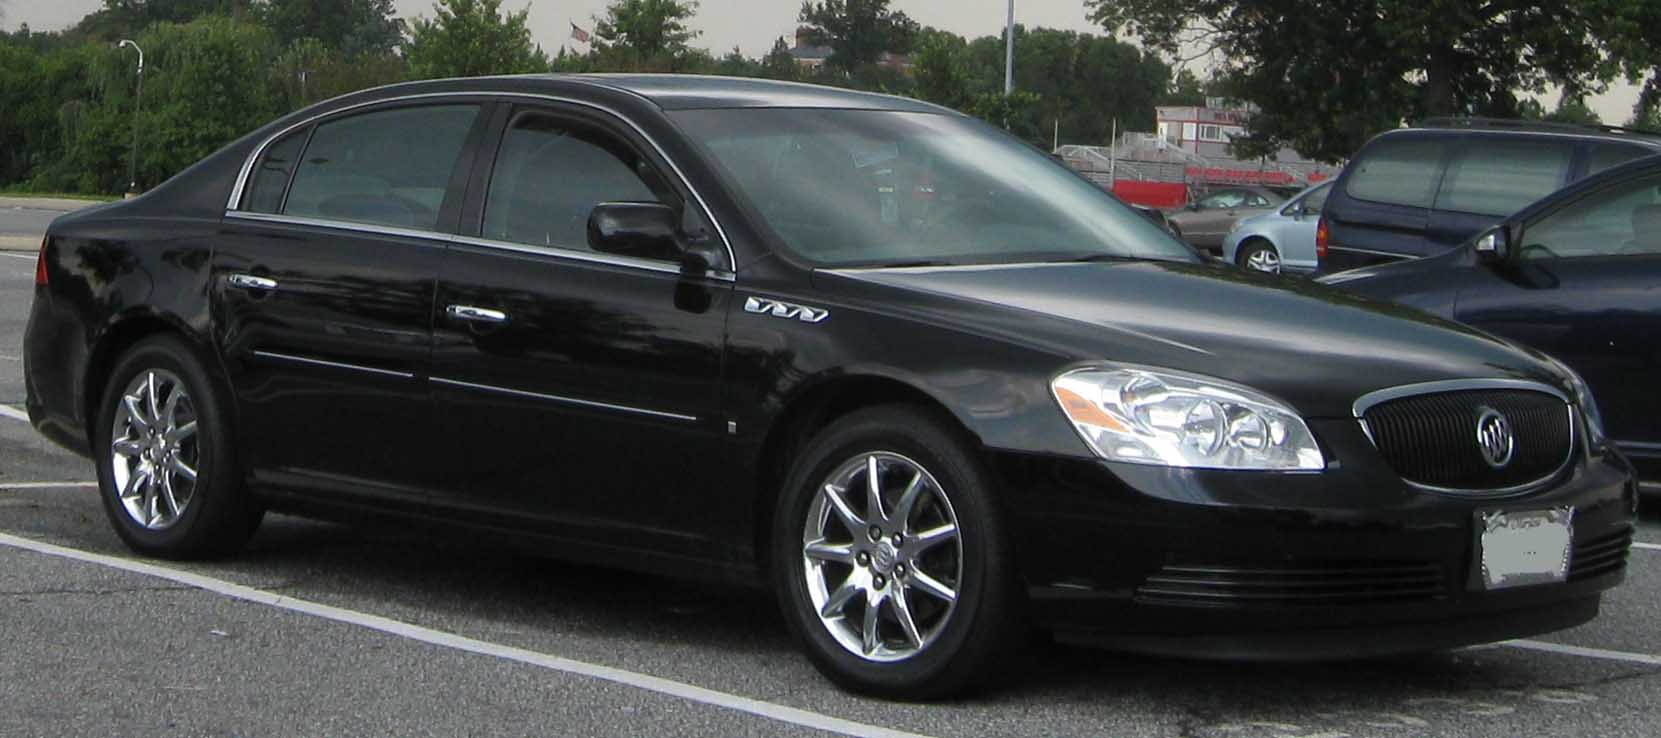 buick lucerne pictures #11